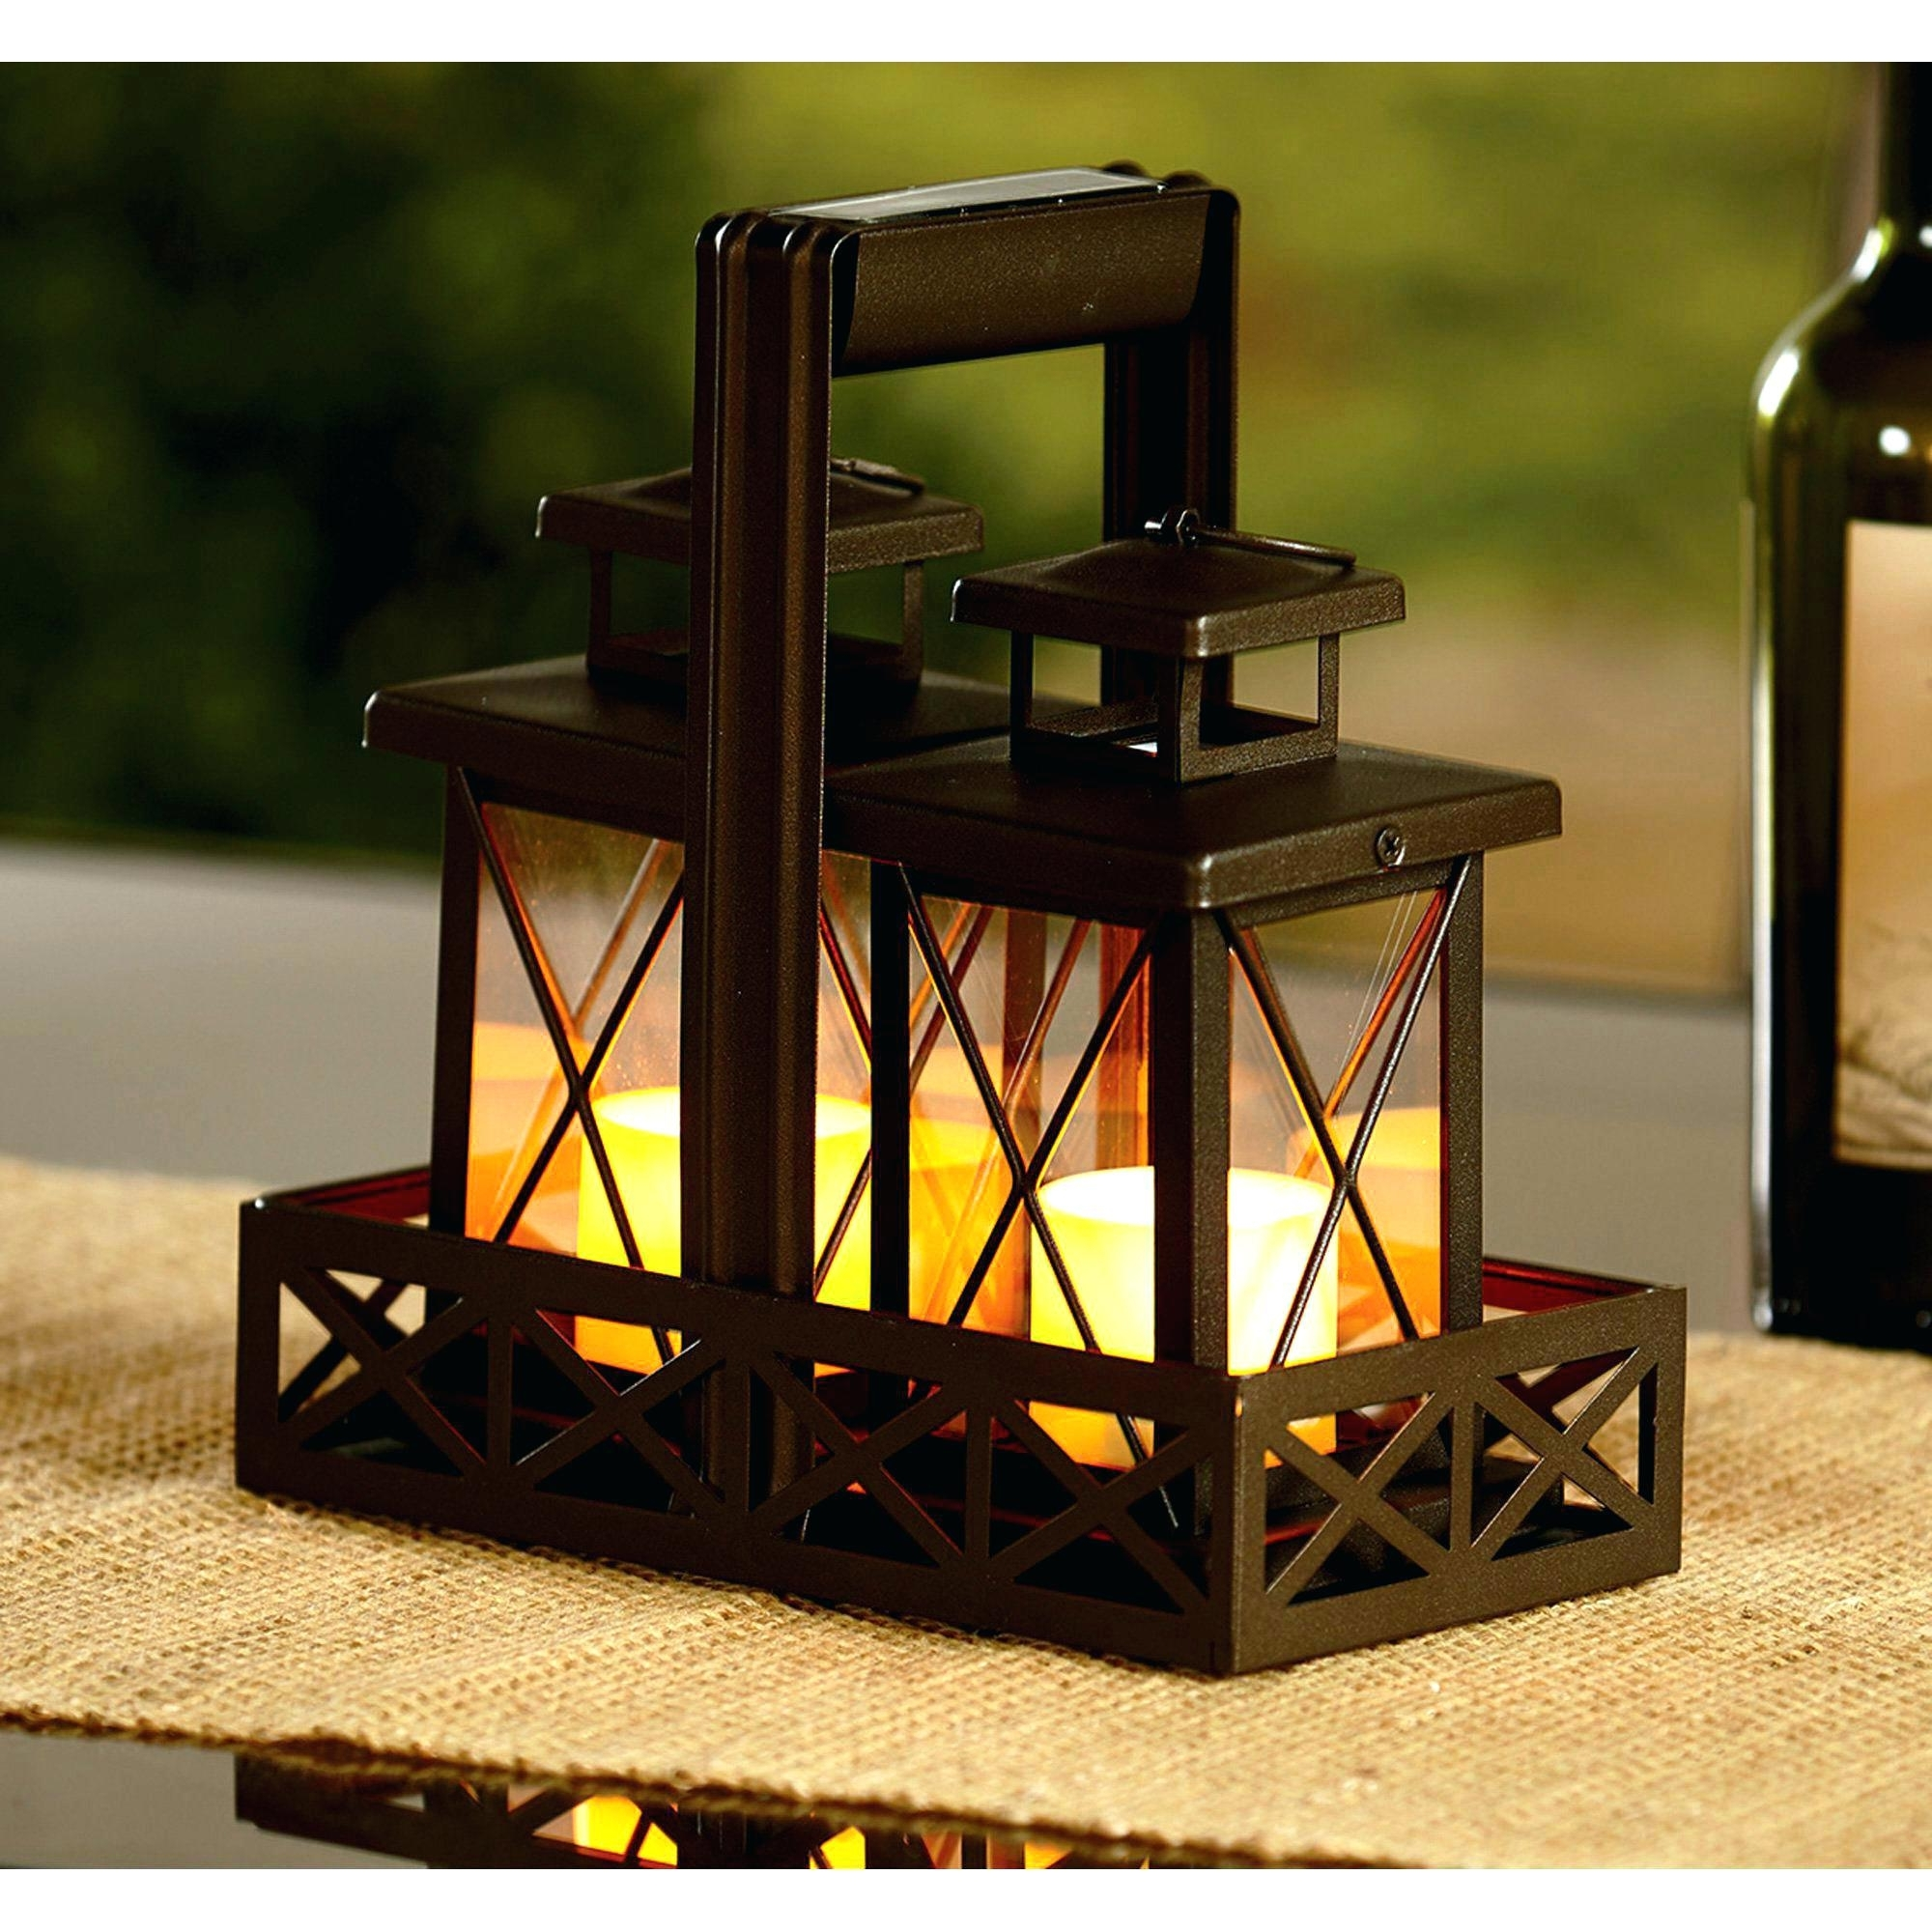 Latest Outdoor Oil Lamps For Patio Table Sale – Pocketworldcupschedule Within Outdoor Oil Lanterns For Patio (Gallery 8 of 20)